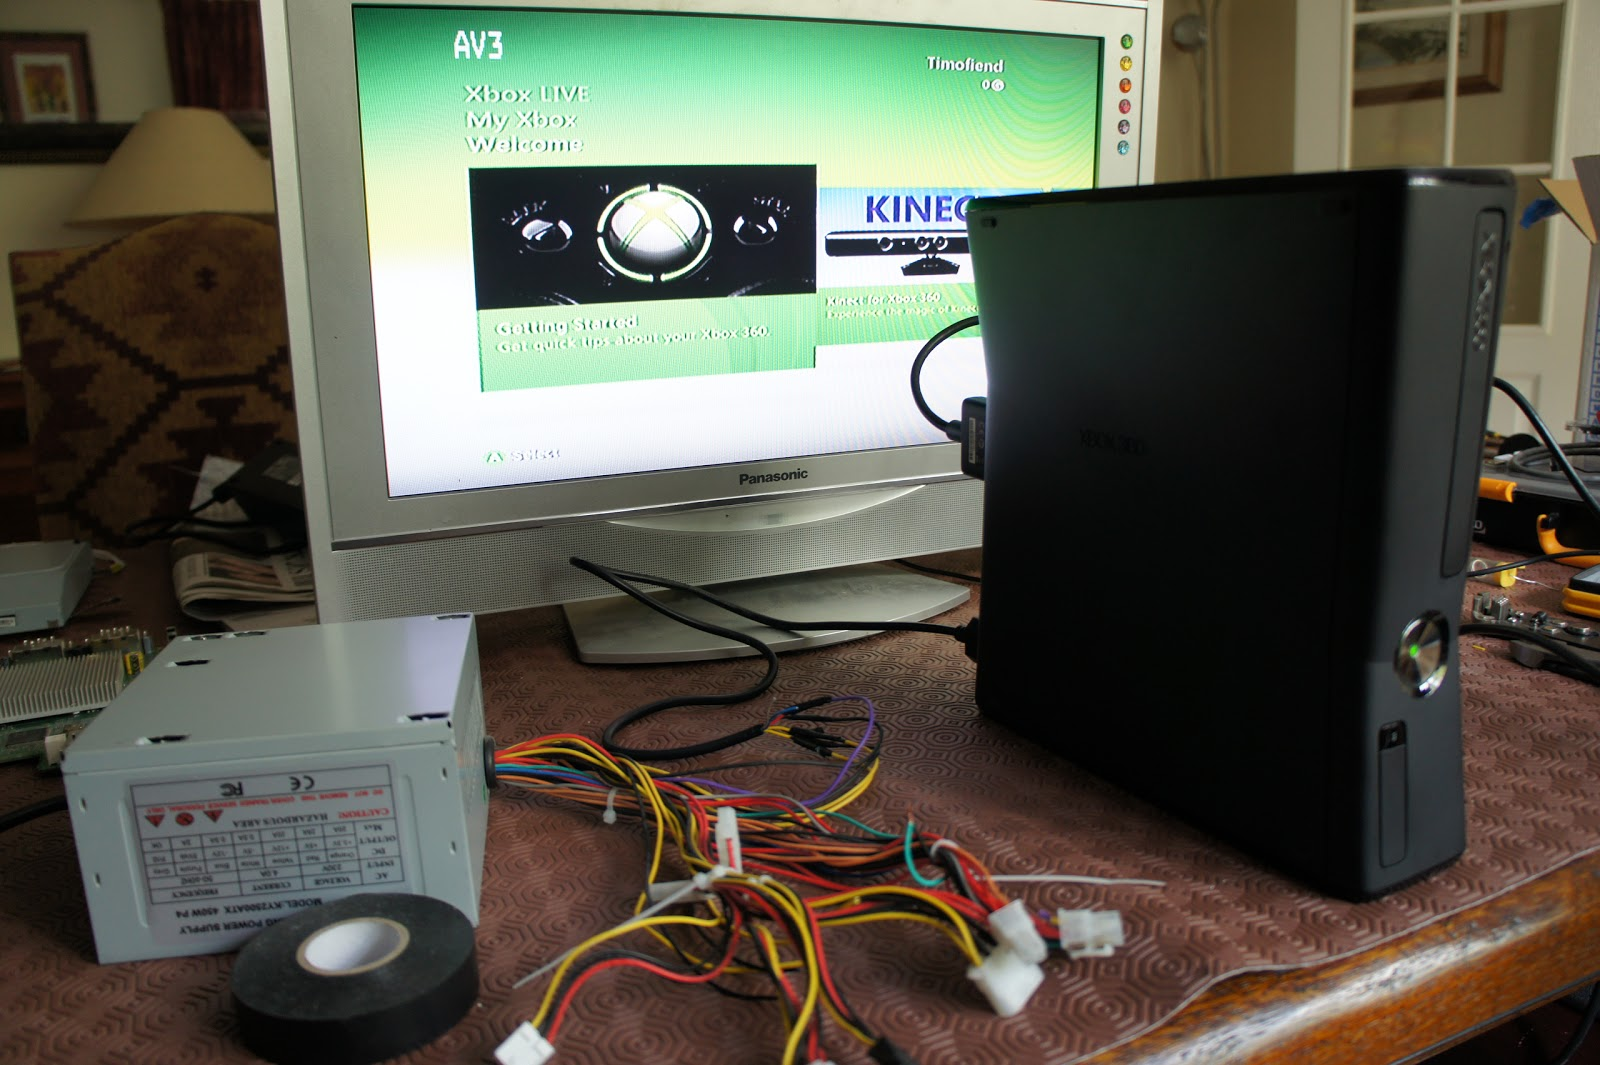 Creation of the Xbox 360 and PS3 in a PC case mod: Xbox